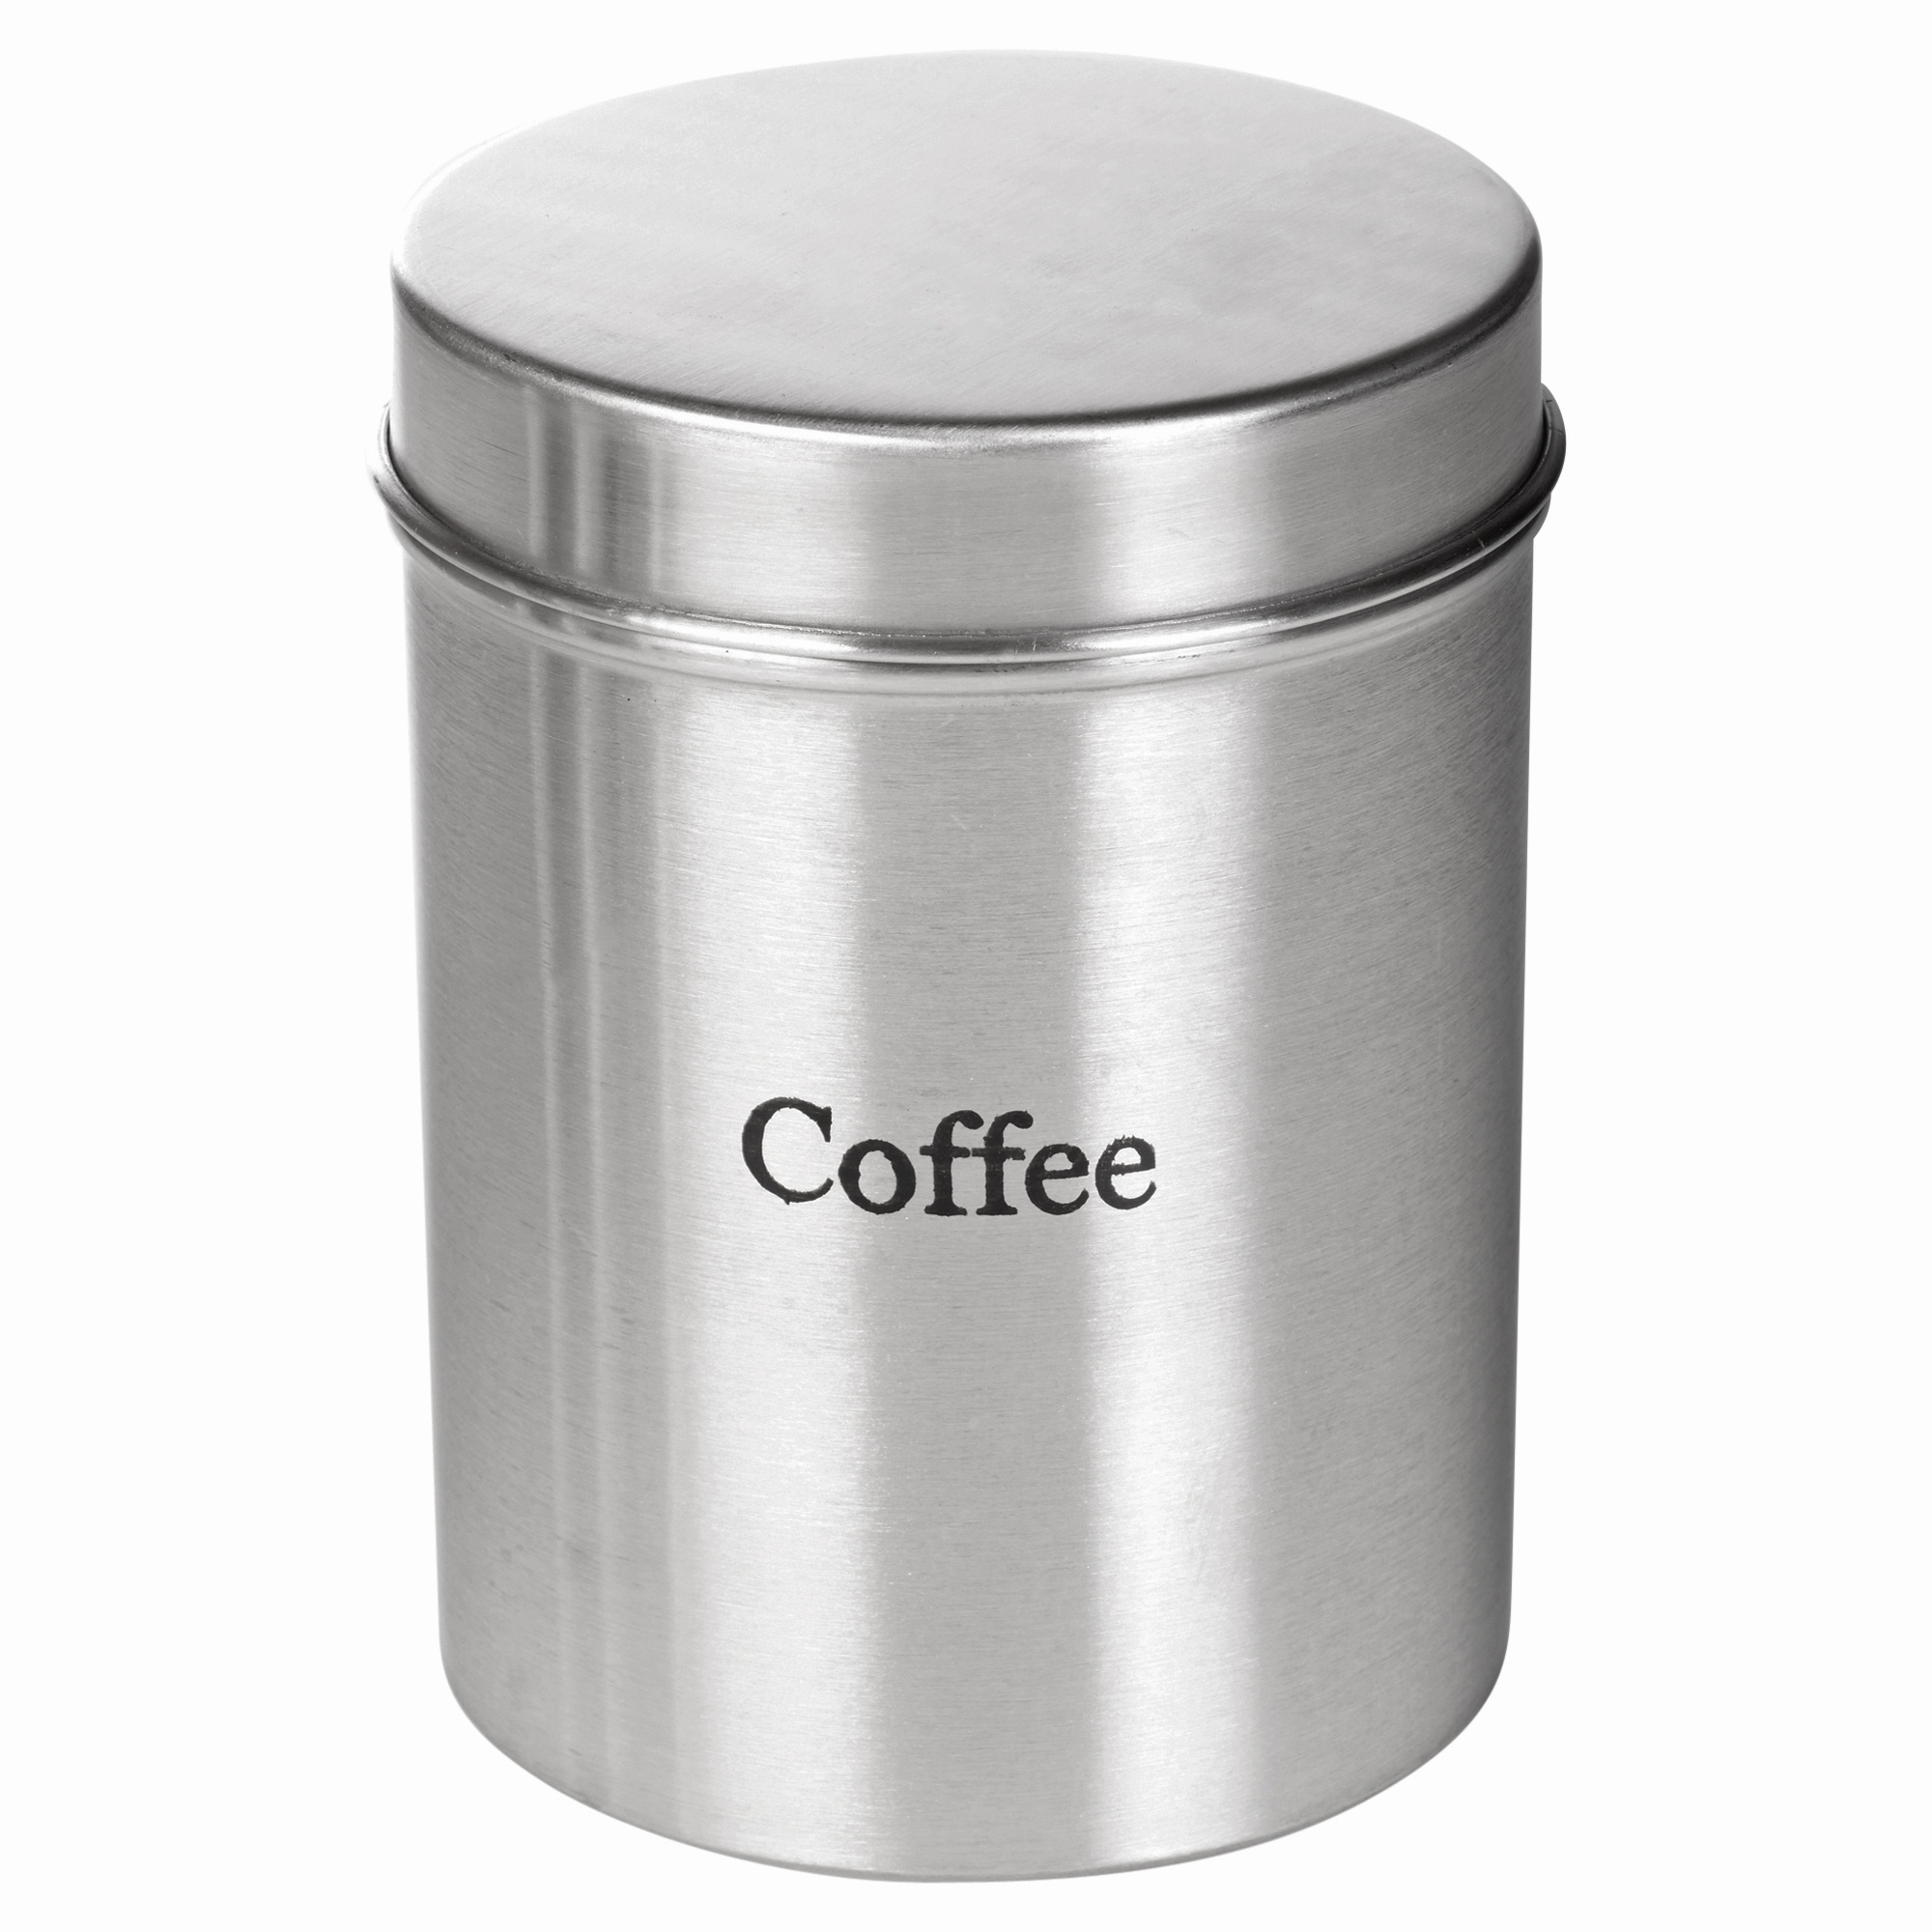 Stainless steel storage containers for kitchen - 3pc Stainless Steel Storage Tins 430670 Rrp 11 99